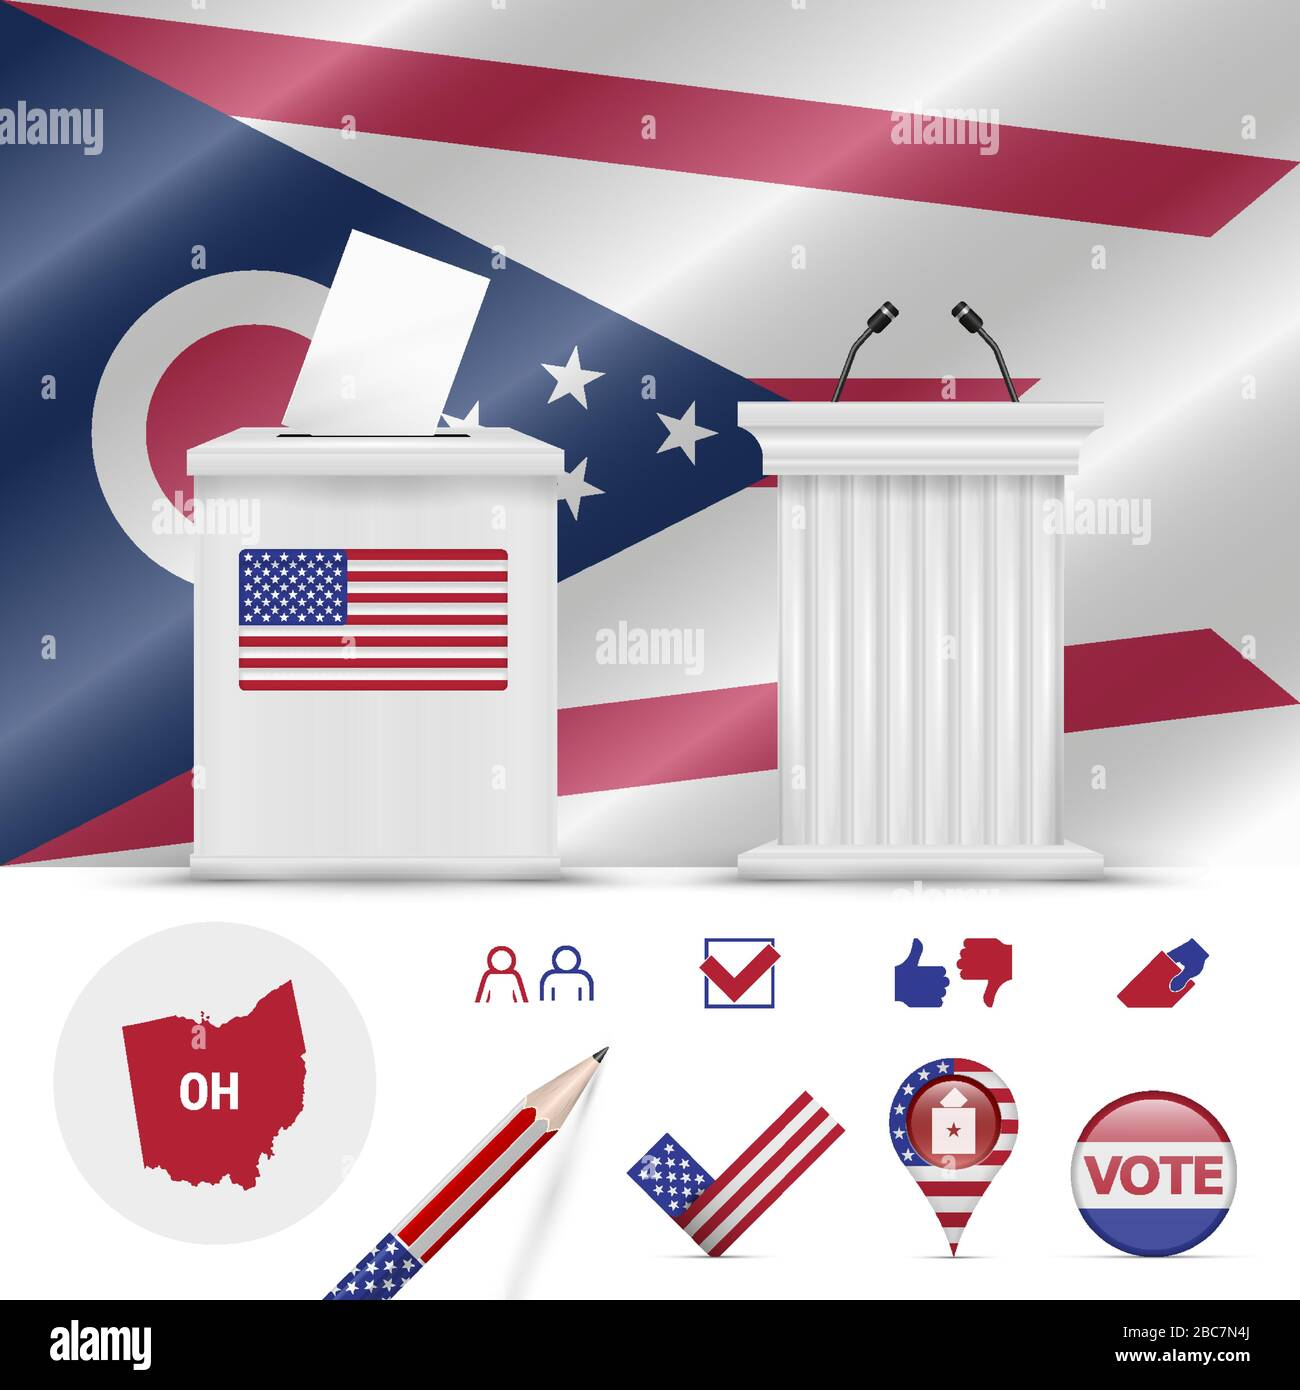 Presidential elections in Ohio. Vector waving flag, realistic ballot box, public speaker's podium, silhouette map and voting icon set. Stock Vector